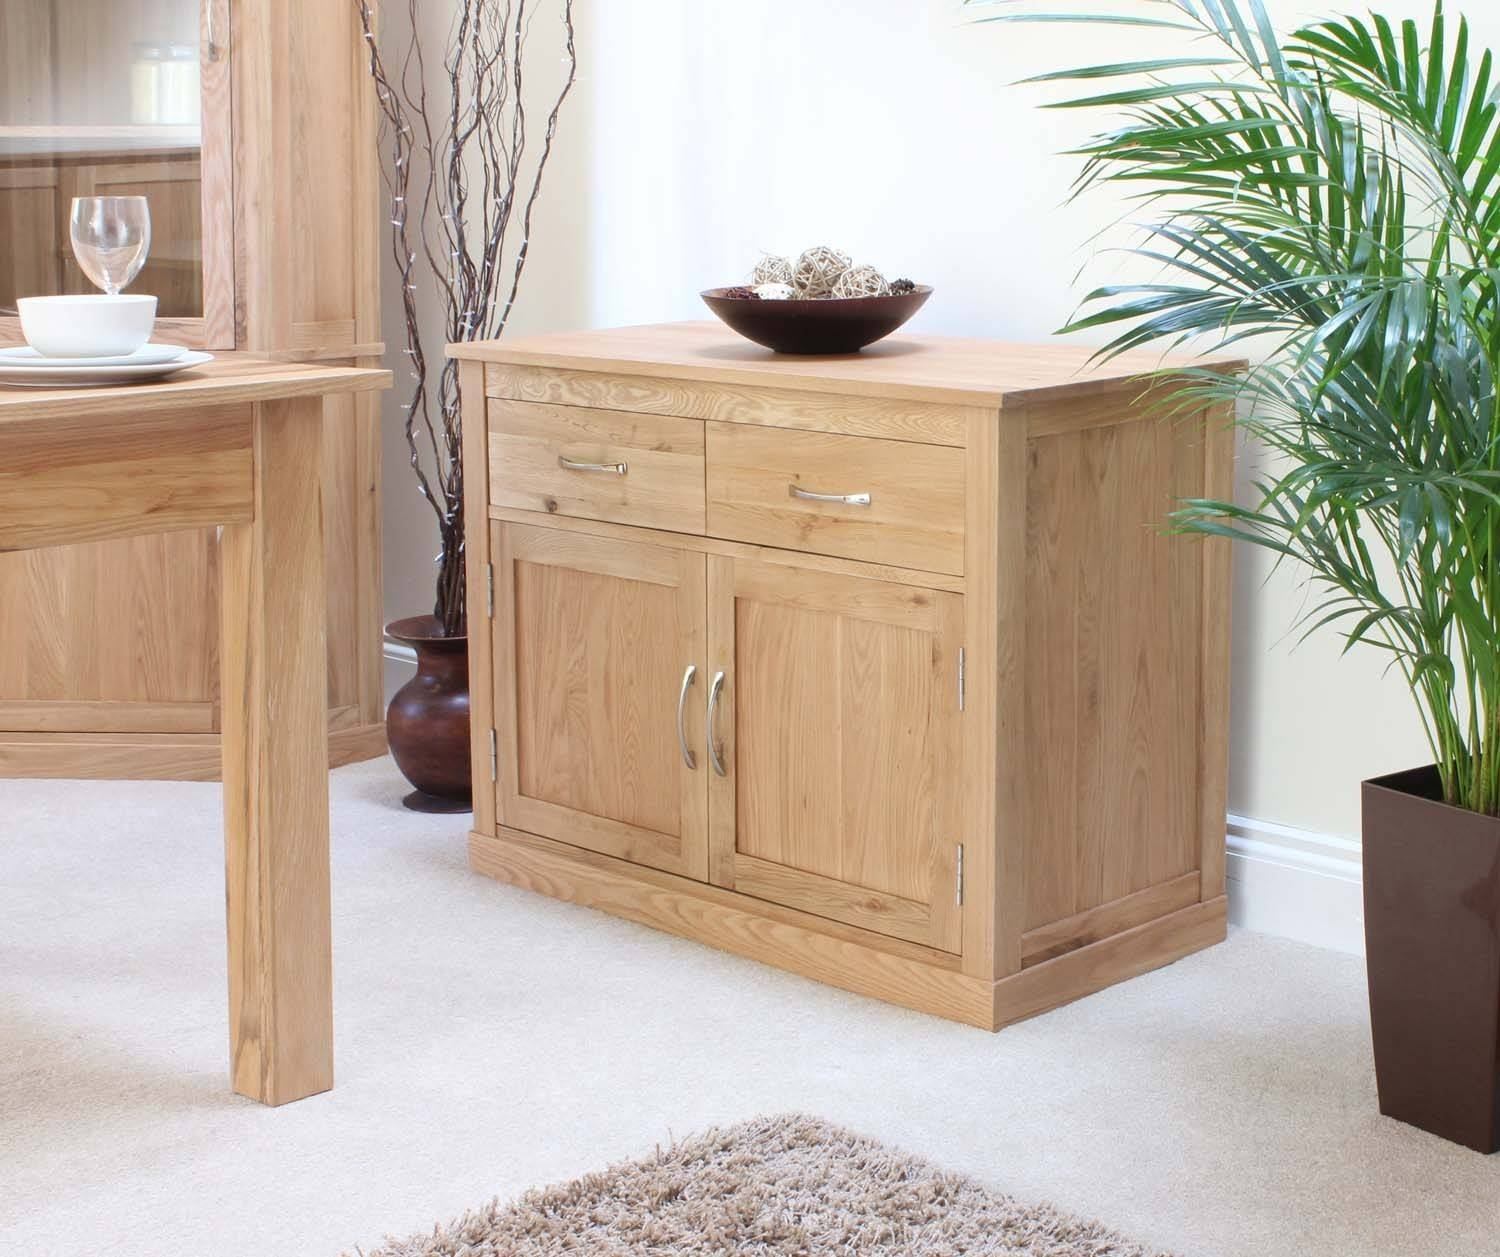 Modern Light Oak Sideboards And Console Table | Solid Oak Intended For Latest Solid Oak Small Sideboards (View 7 of 15)